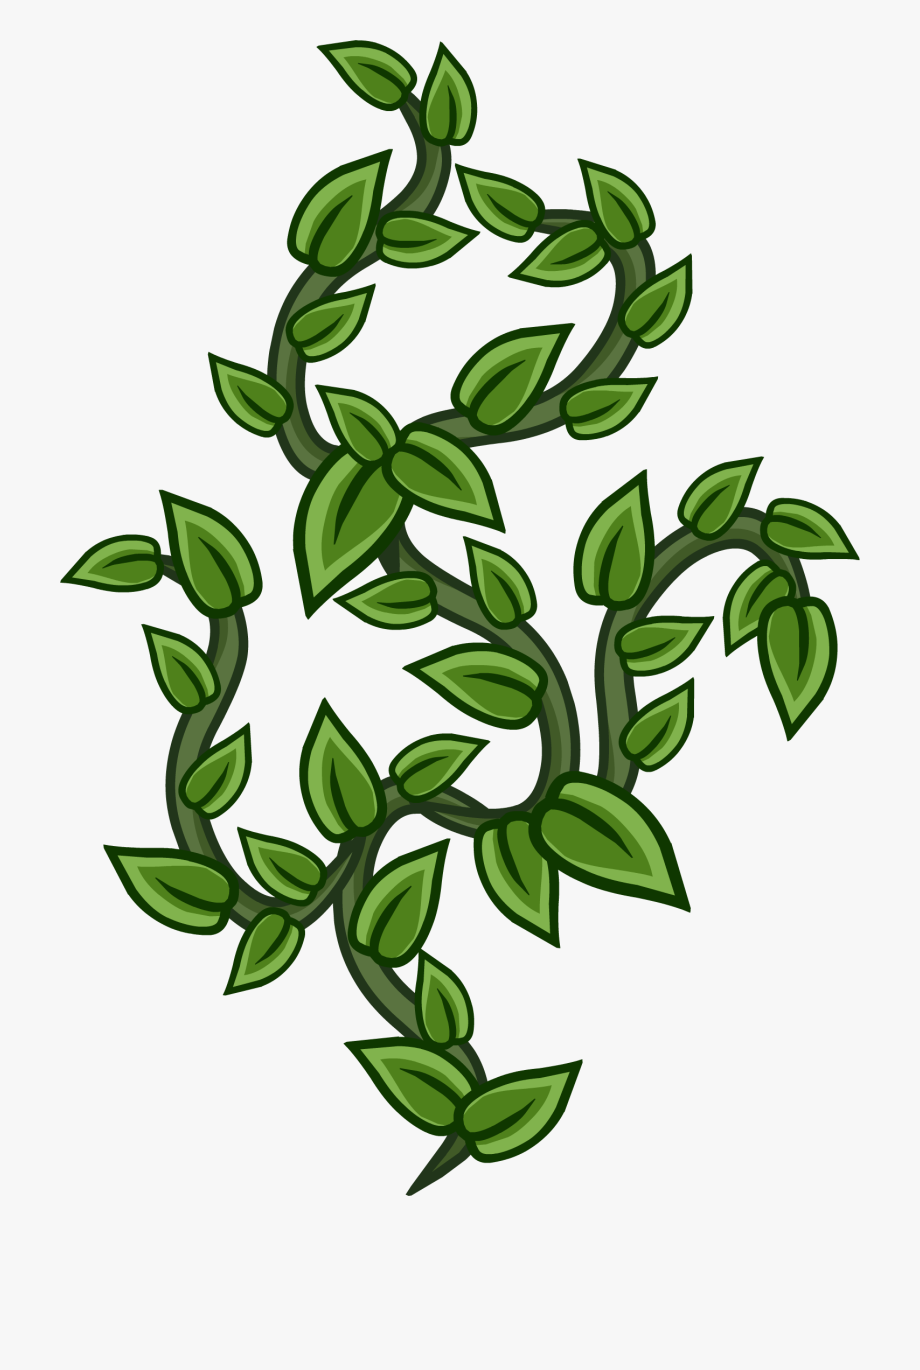 Vine sprite free cliparts. Vines clipart forest